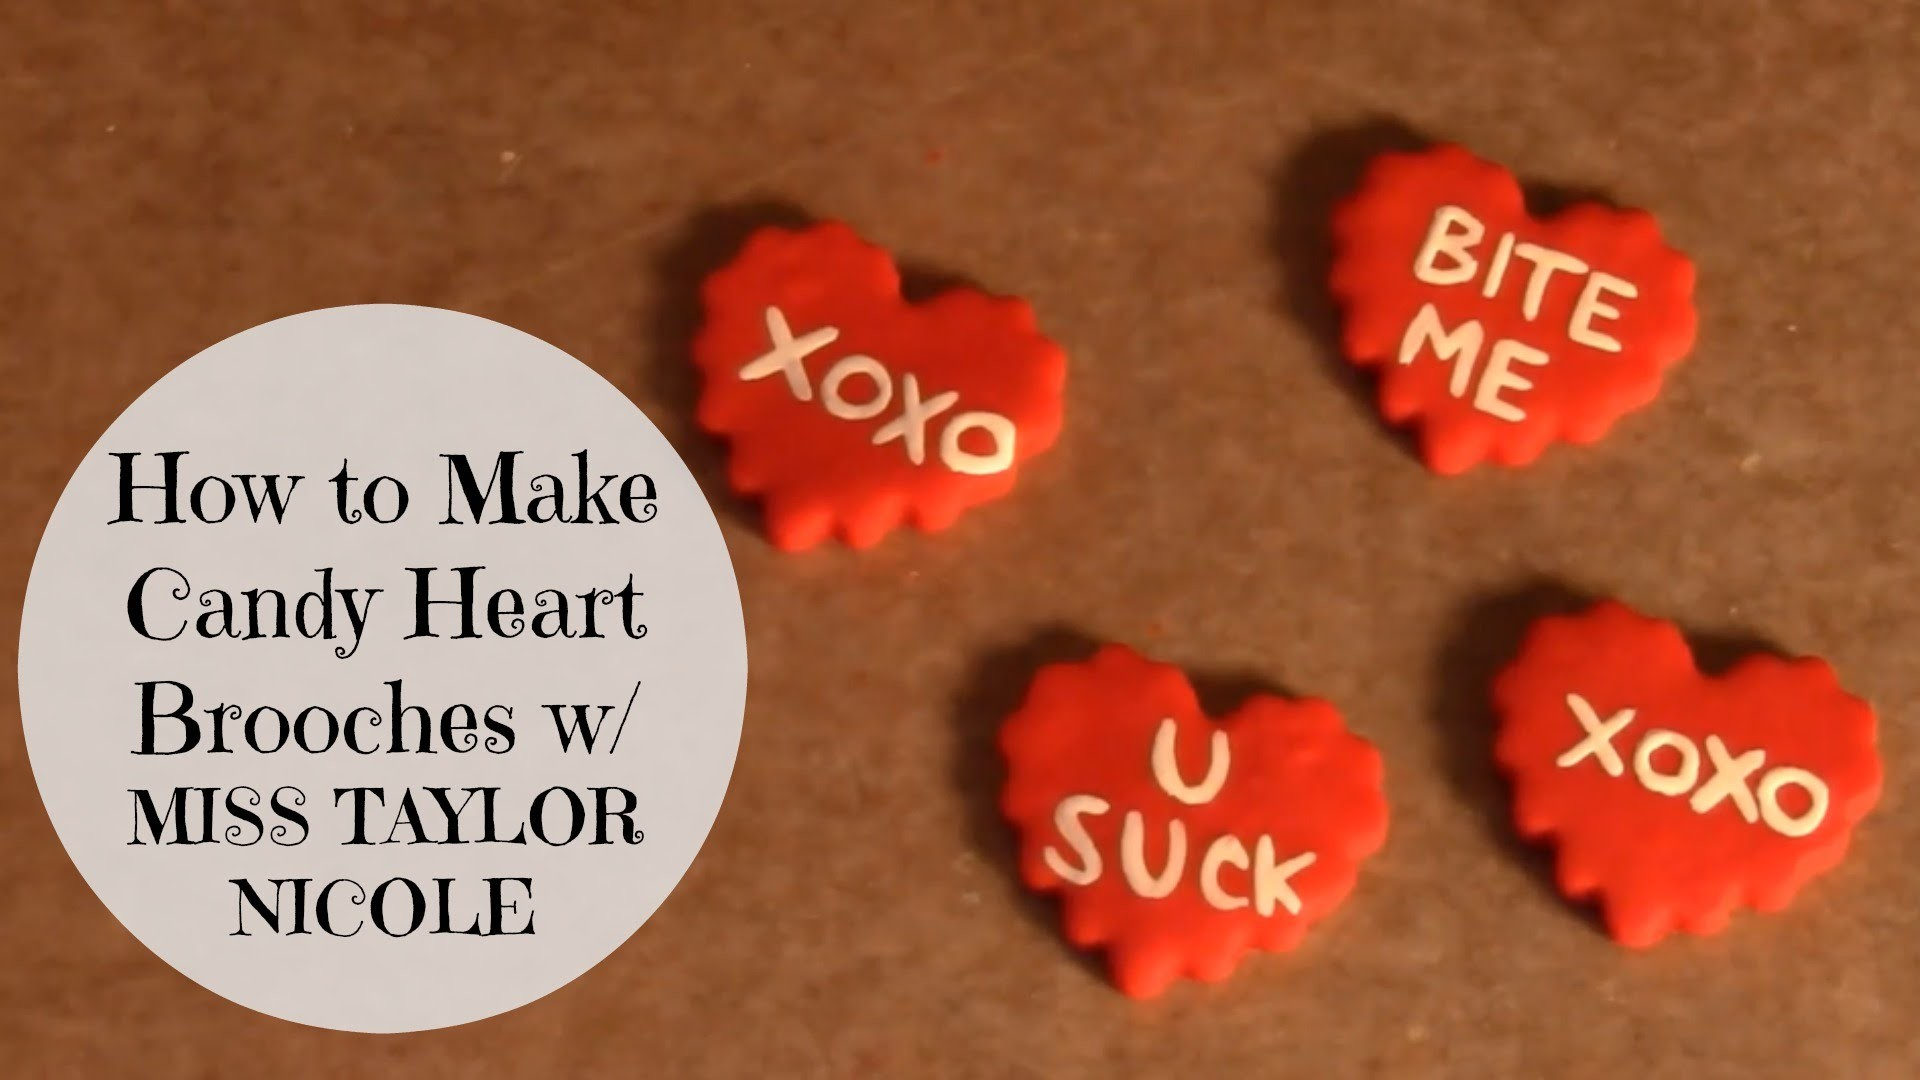 How to Make Candy Heart Brooches w. MISS TAYLOR NICOLE